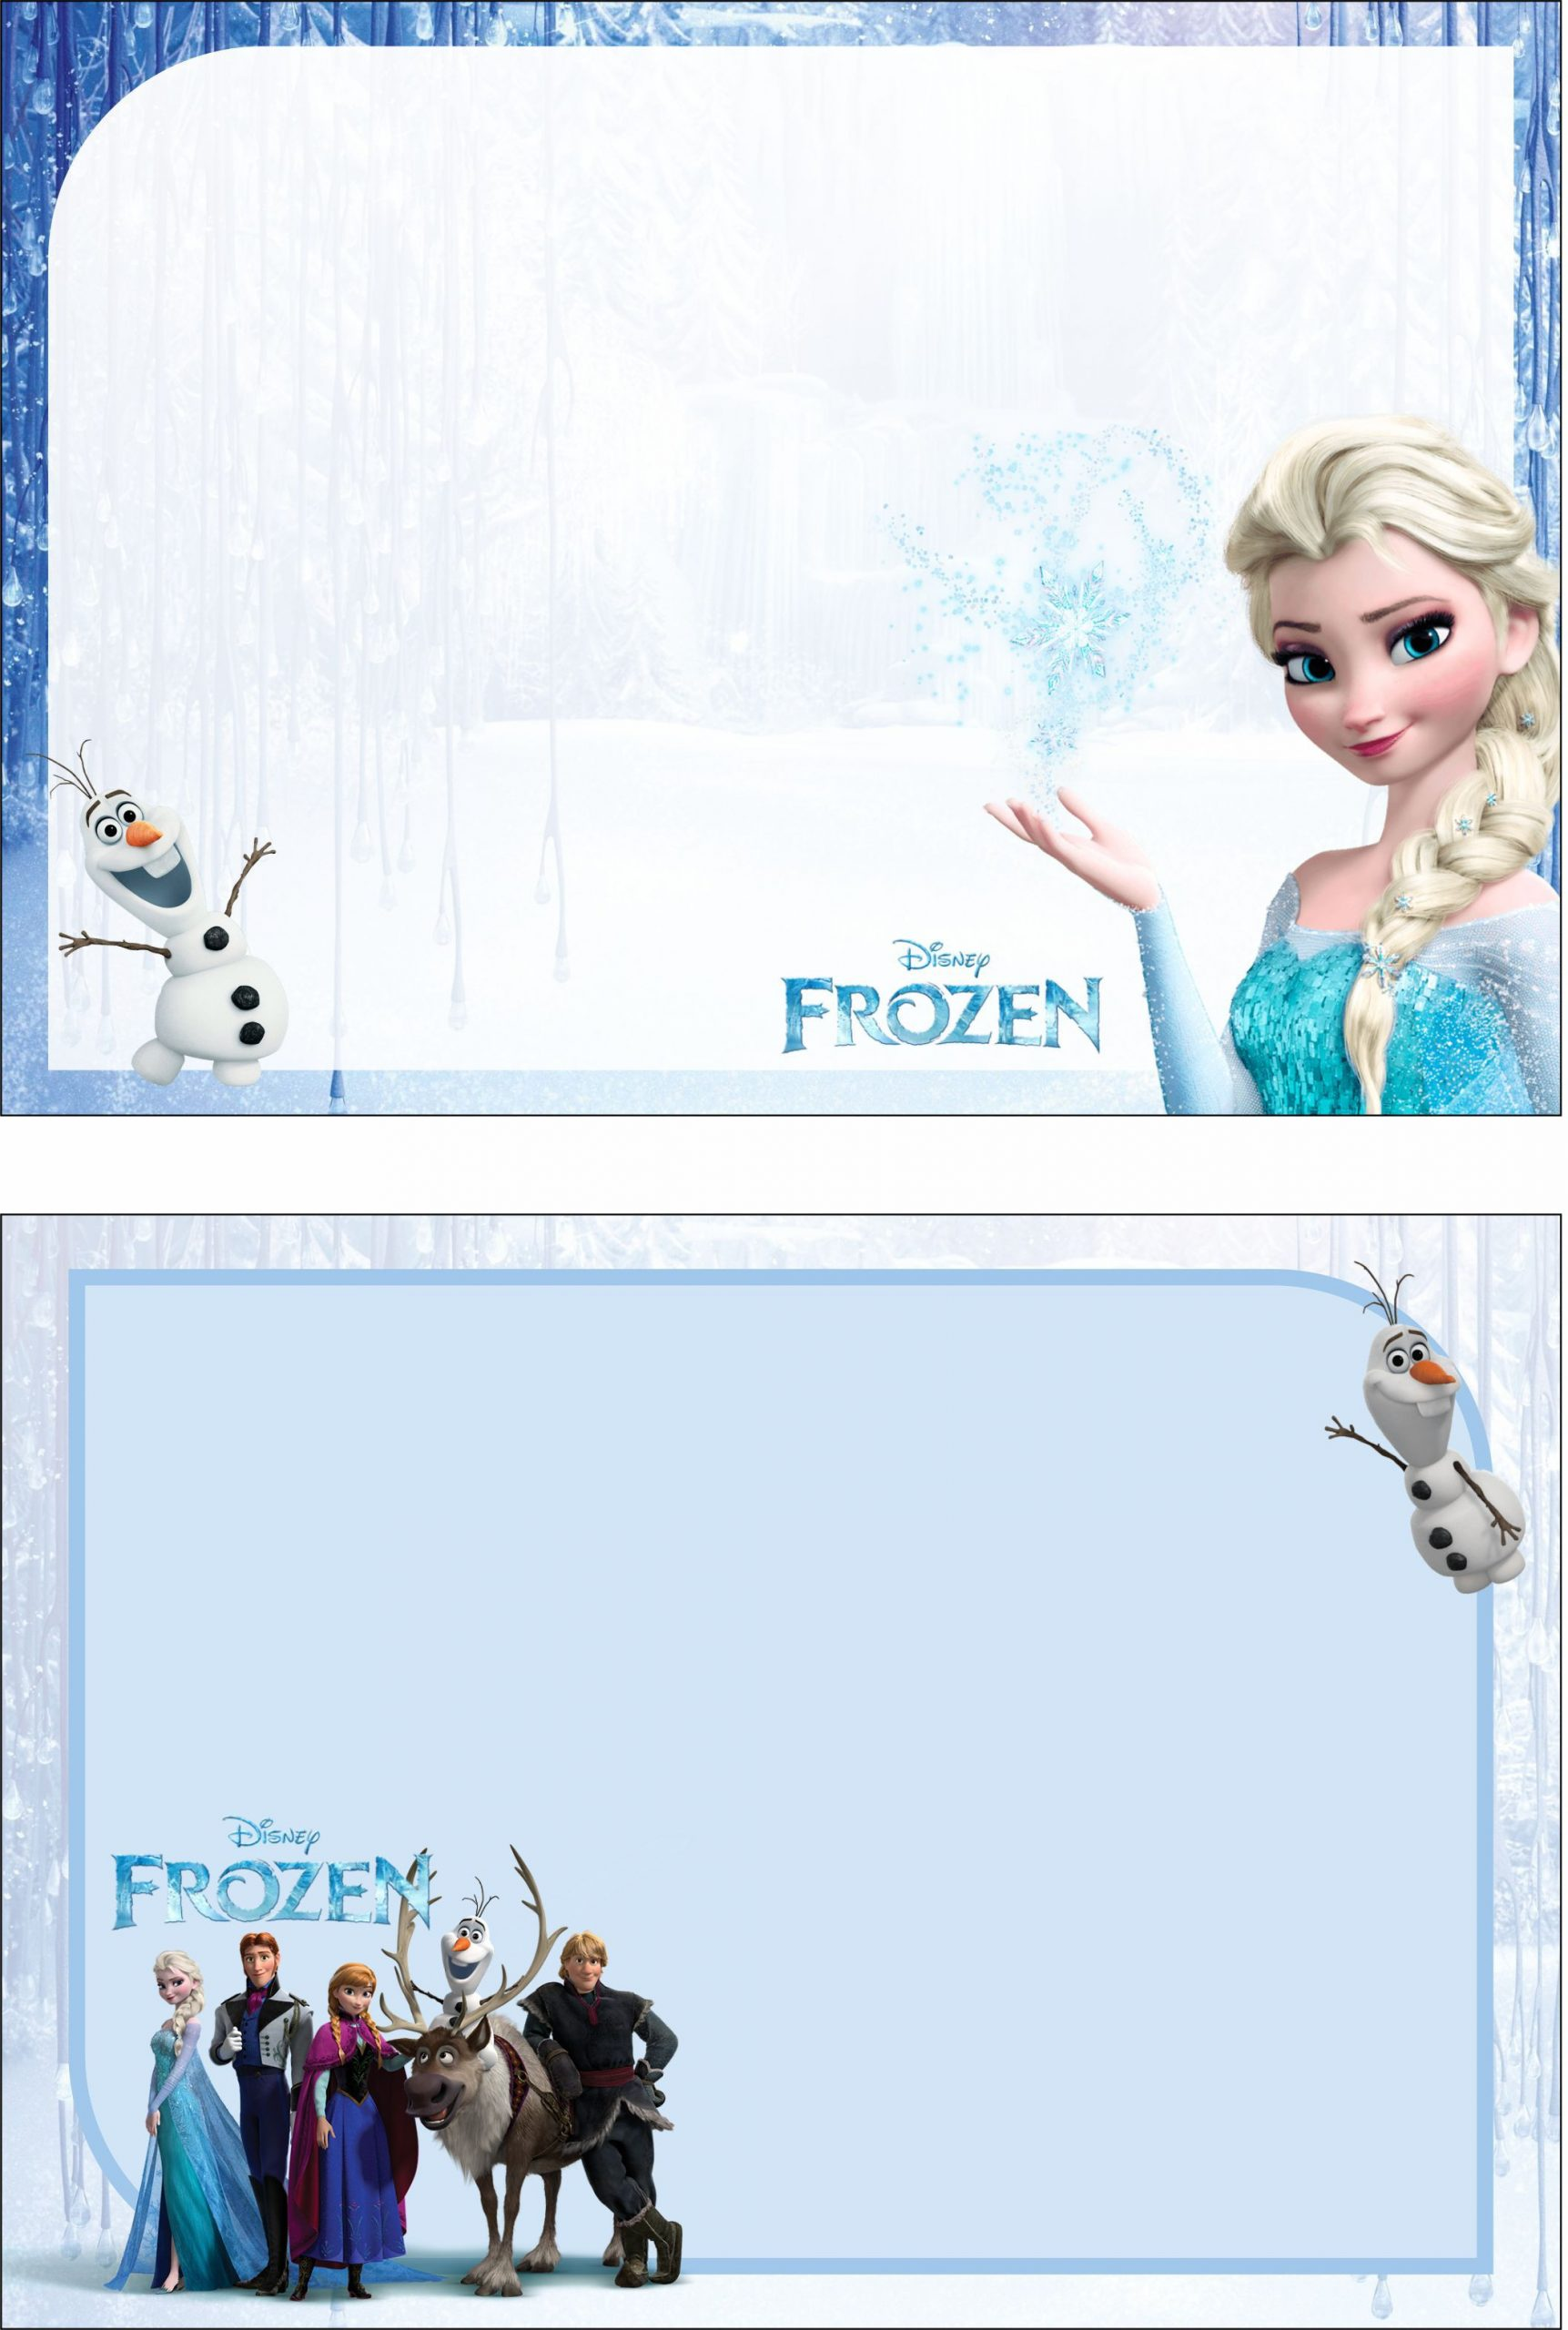 Frozen Printable Birthday Invitations Free Frozen 2 Birthday Party Kit Templates In 2020